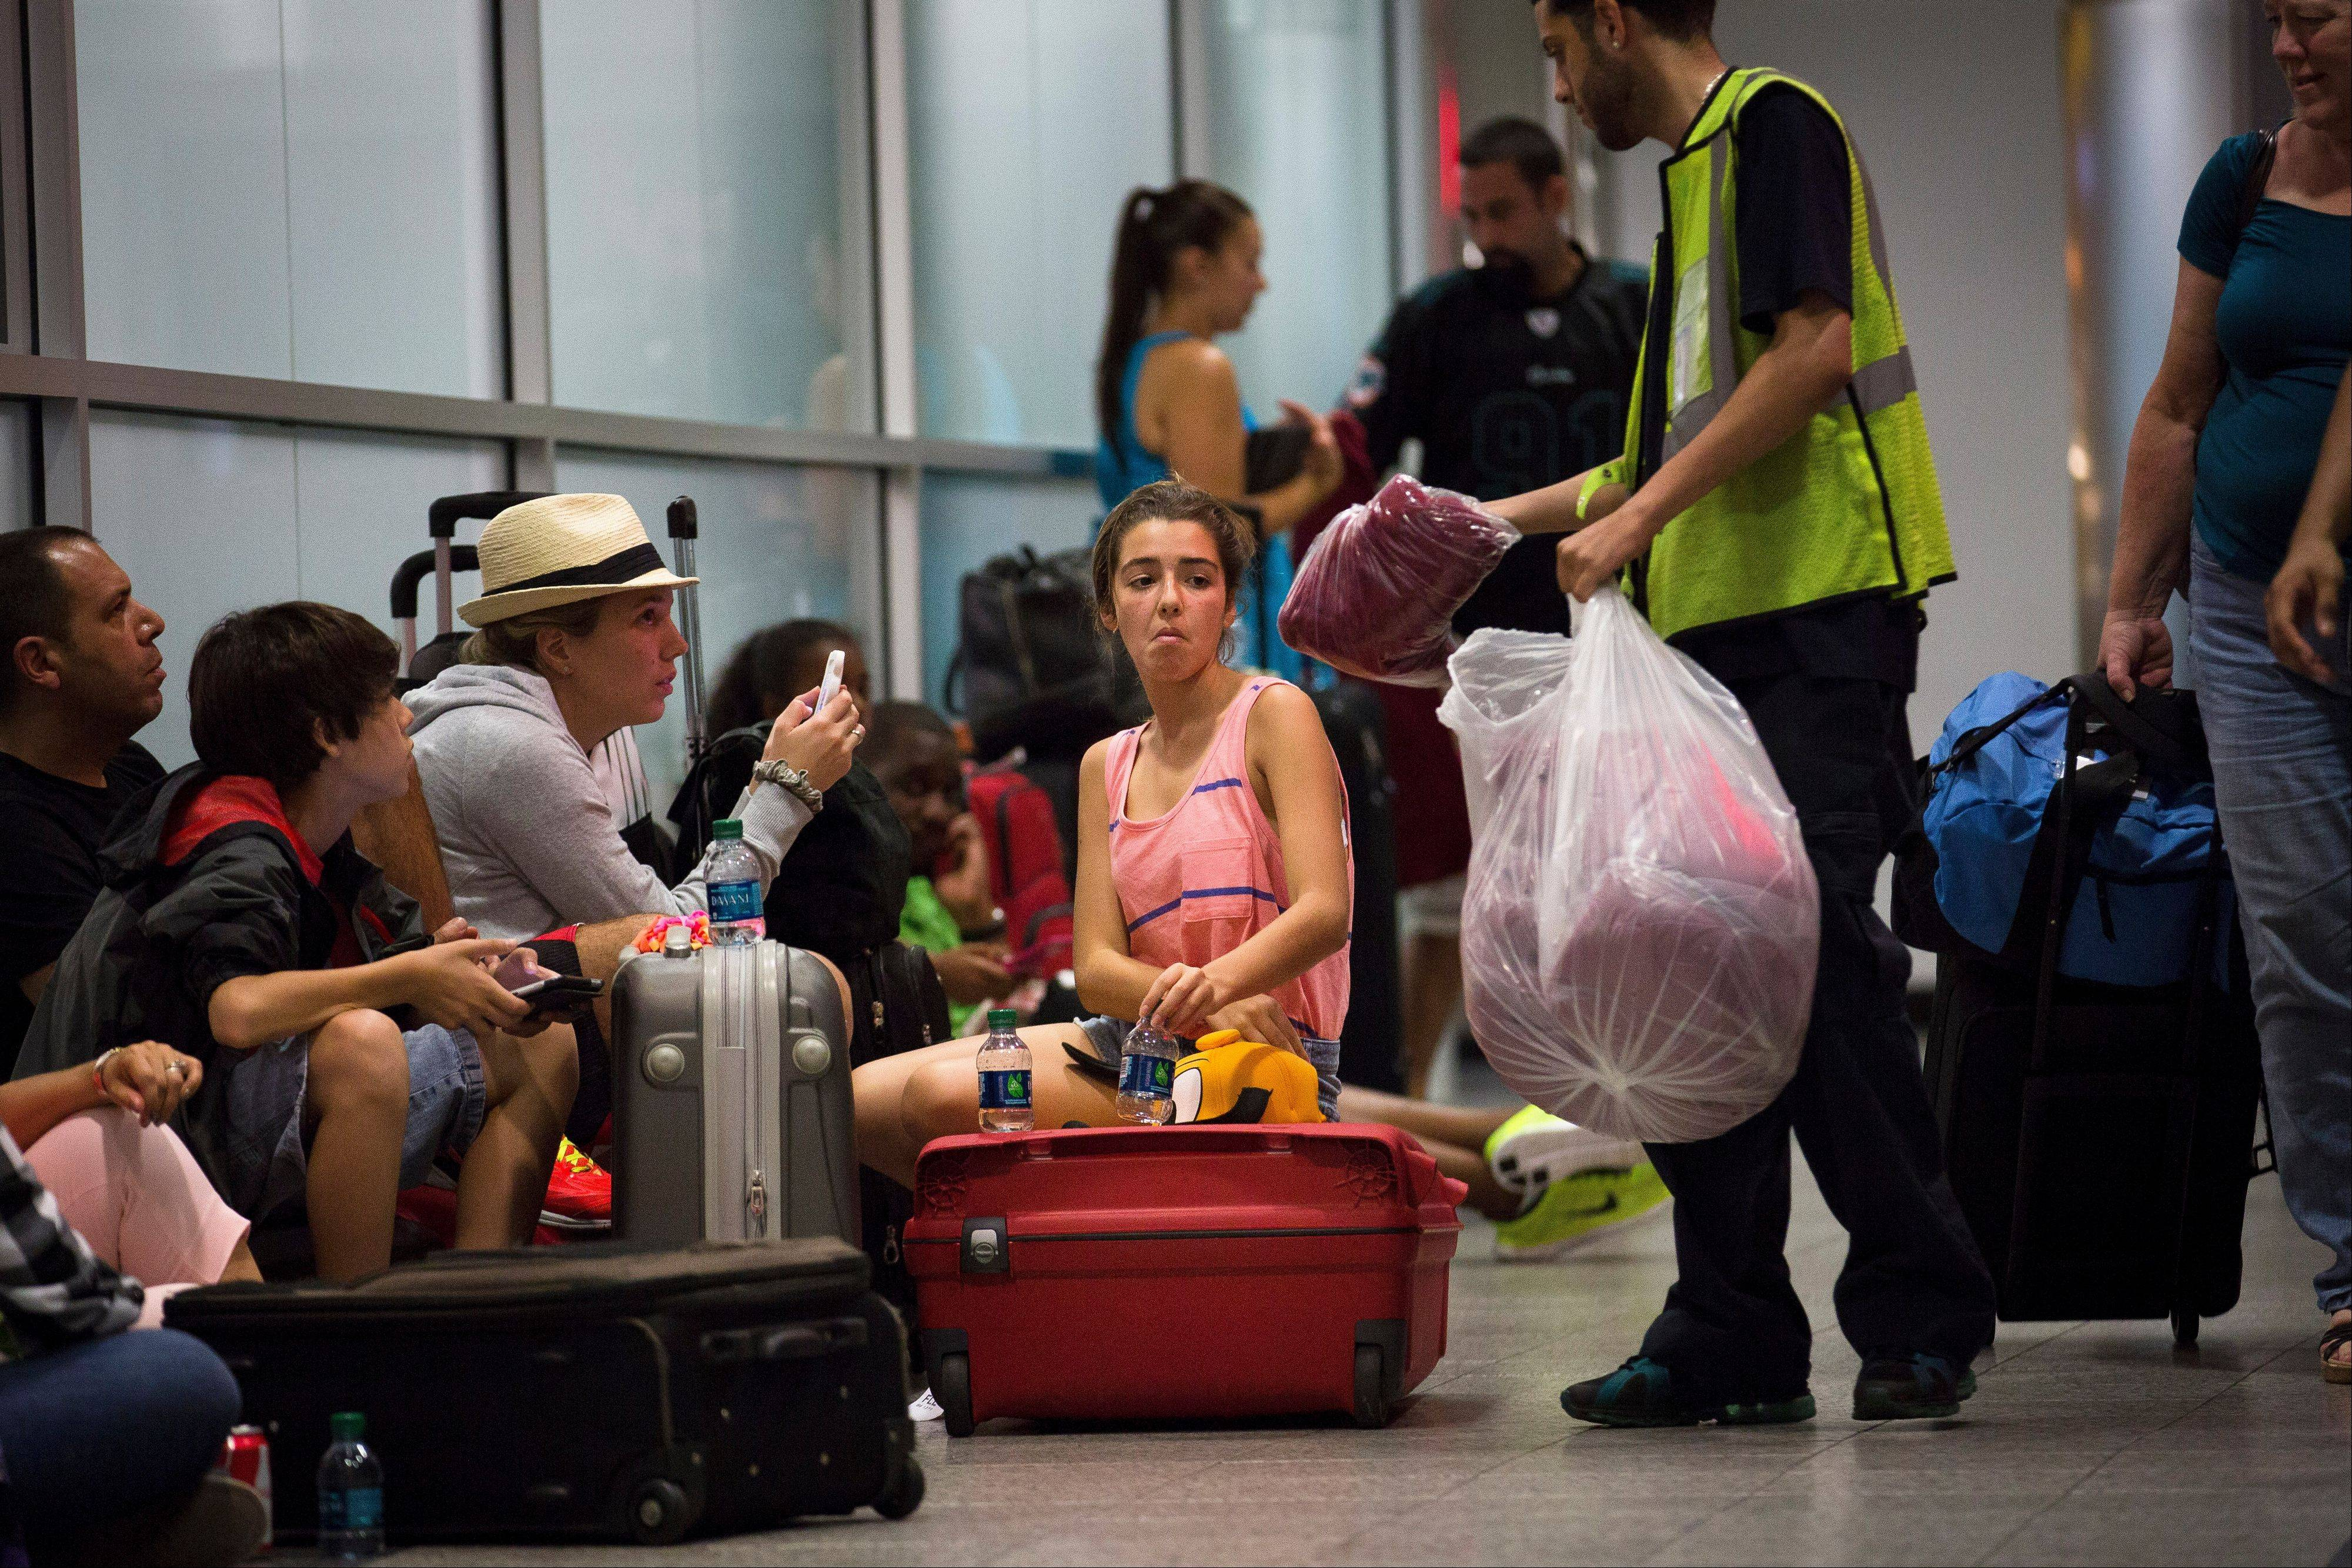 Stranded passengers are handed blankets while they wait at LaGuardia Airport as multiple flights were canceled after a Southwest Airlines 737 plane's nose gear collapsed during a landing, Monday, July 22, 2013, in New York. The airport fully reopened Tuesday